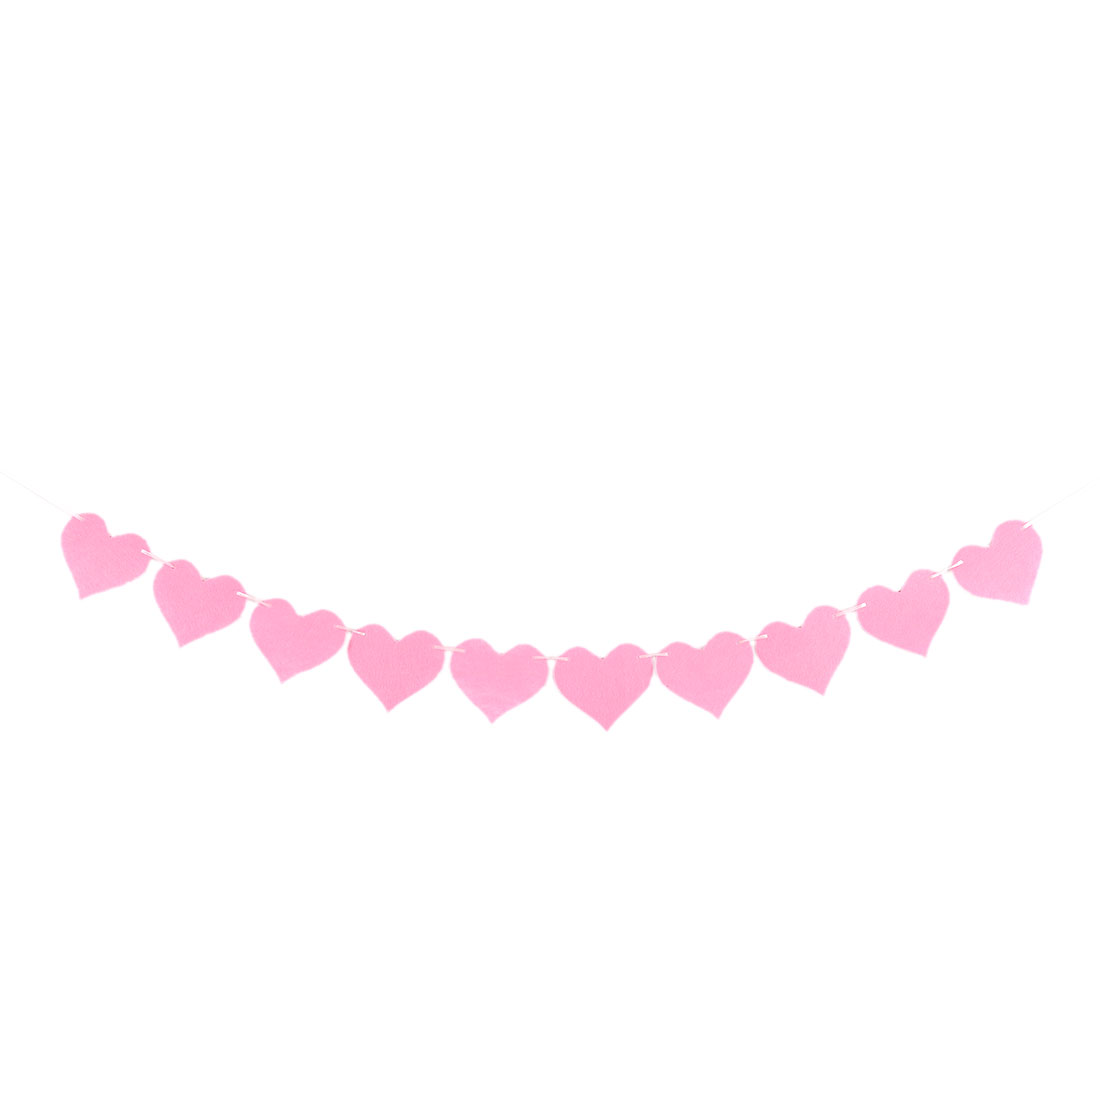 Non-woven Fabric Heart Shaped Wedding Decoration Photo Prop Bunting Banner Pink